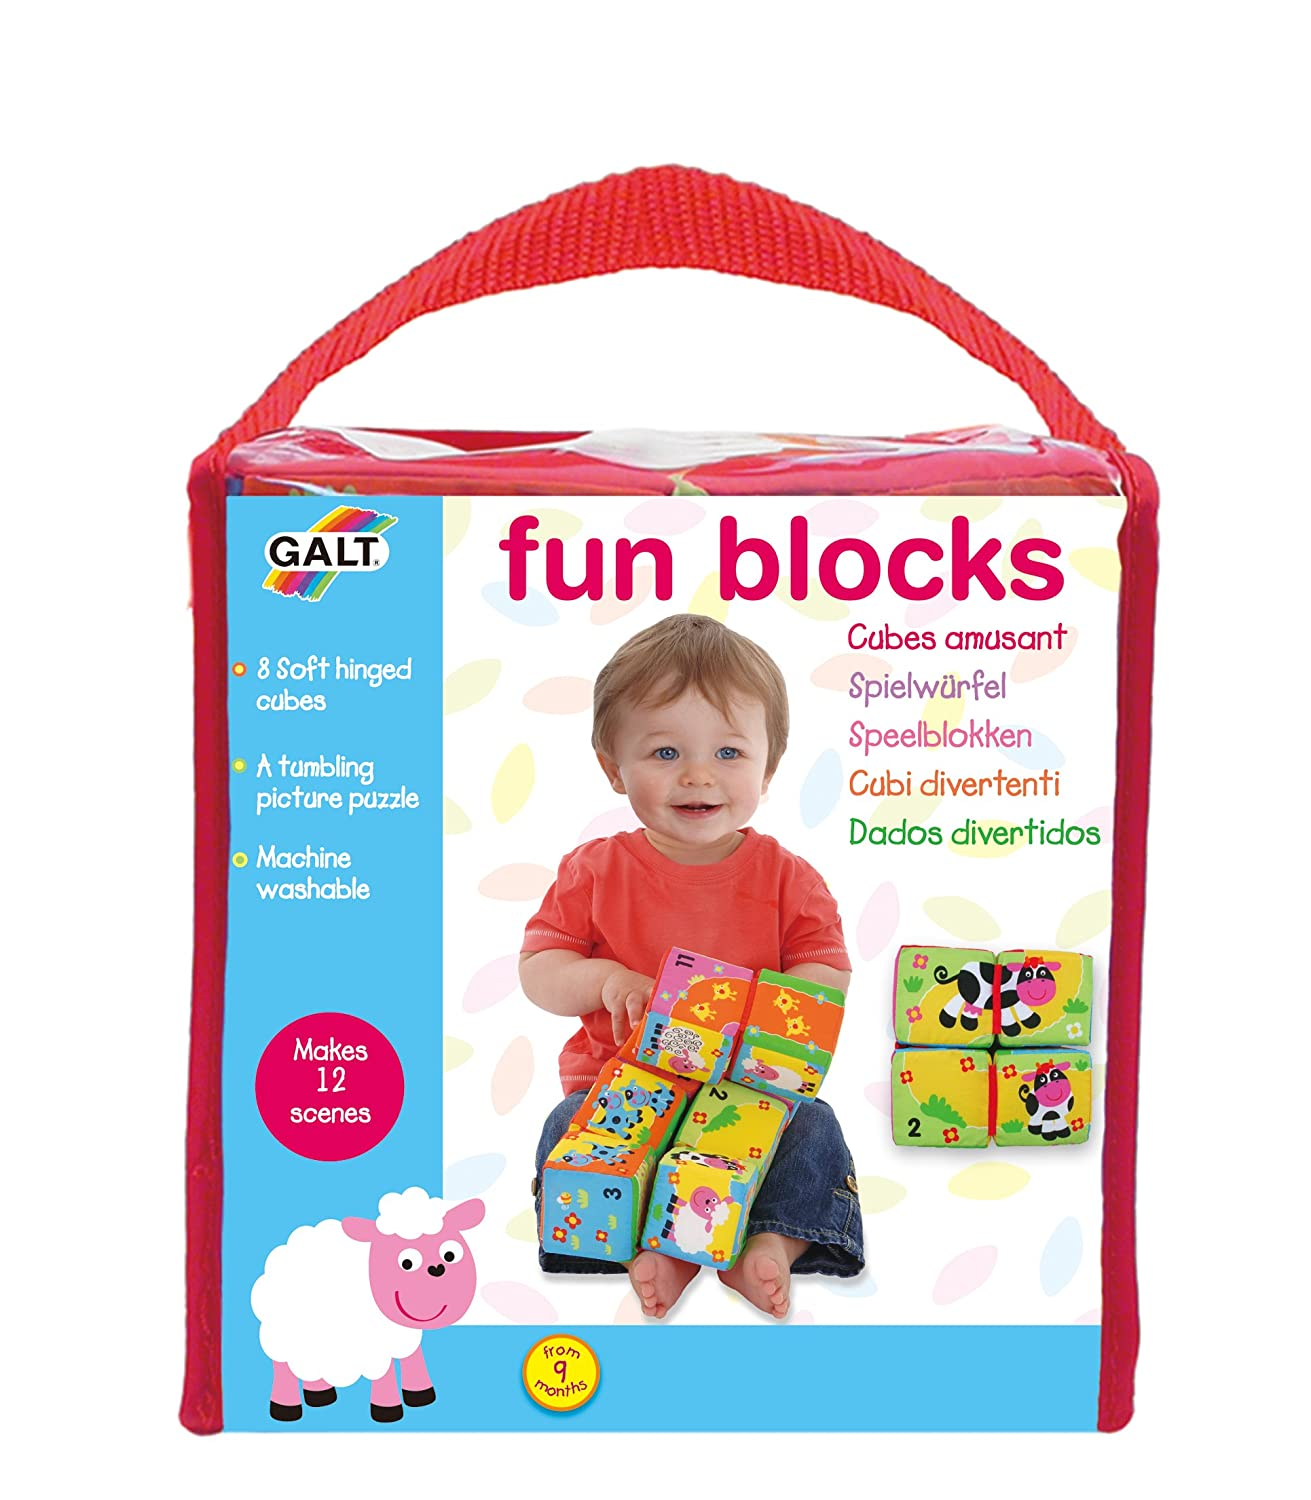 Galt Toys Fun Blocks Amazon Toys & Games